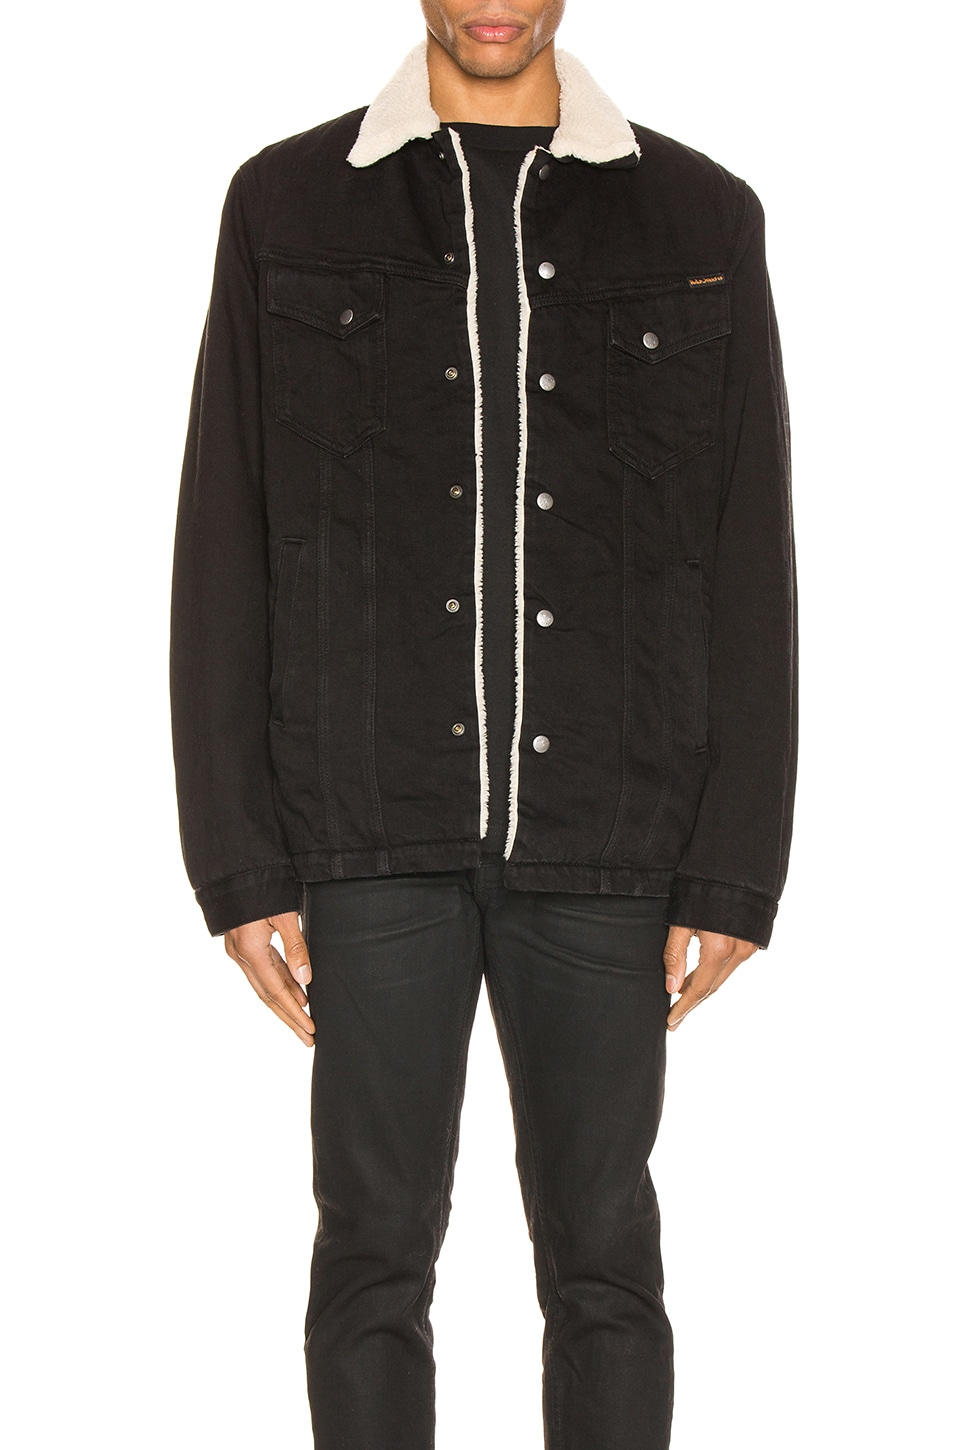 Nudie Jeans Lenny Jacket in Black Worn